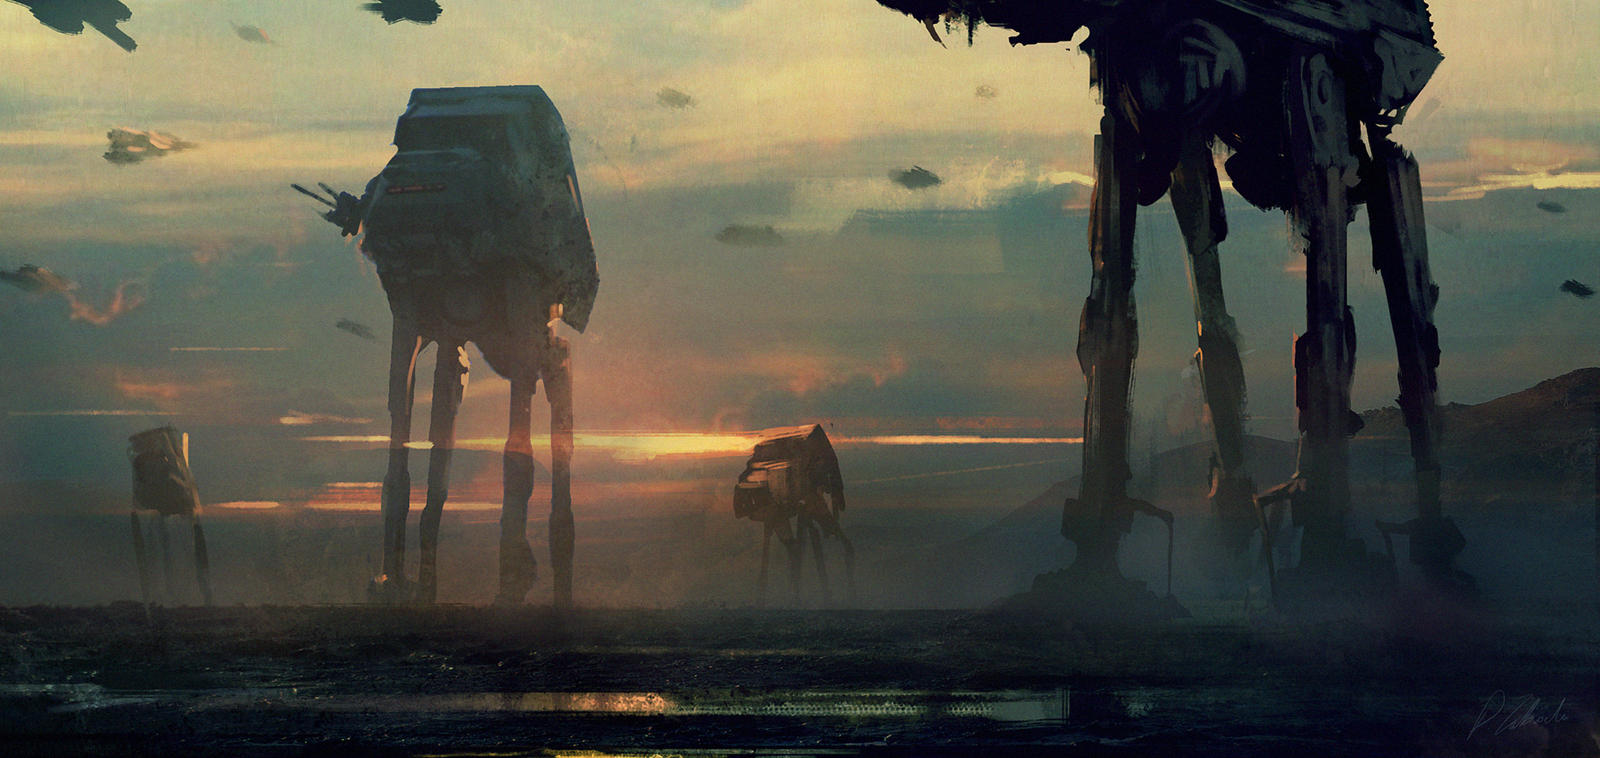 Imperial Walkers by daRoz on DeviantArt